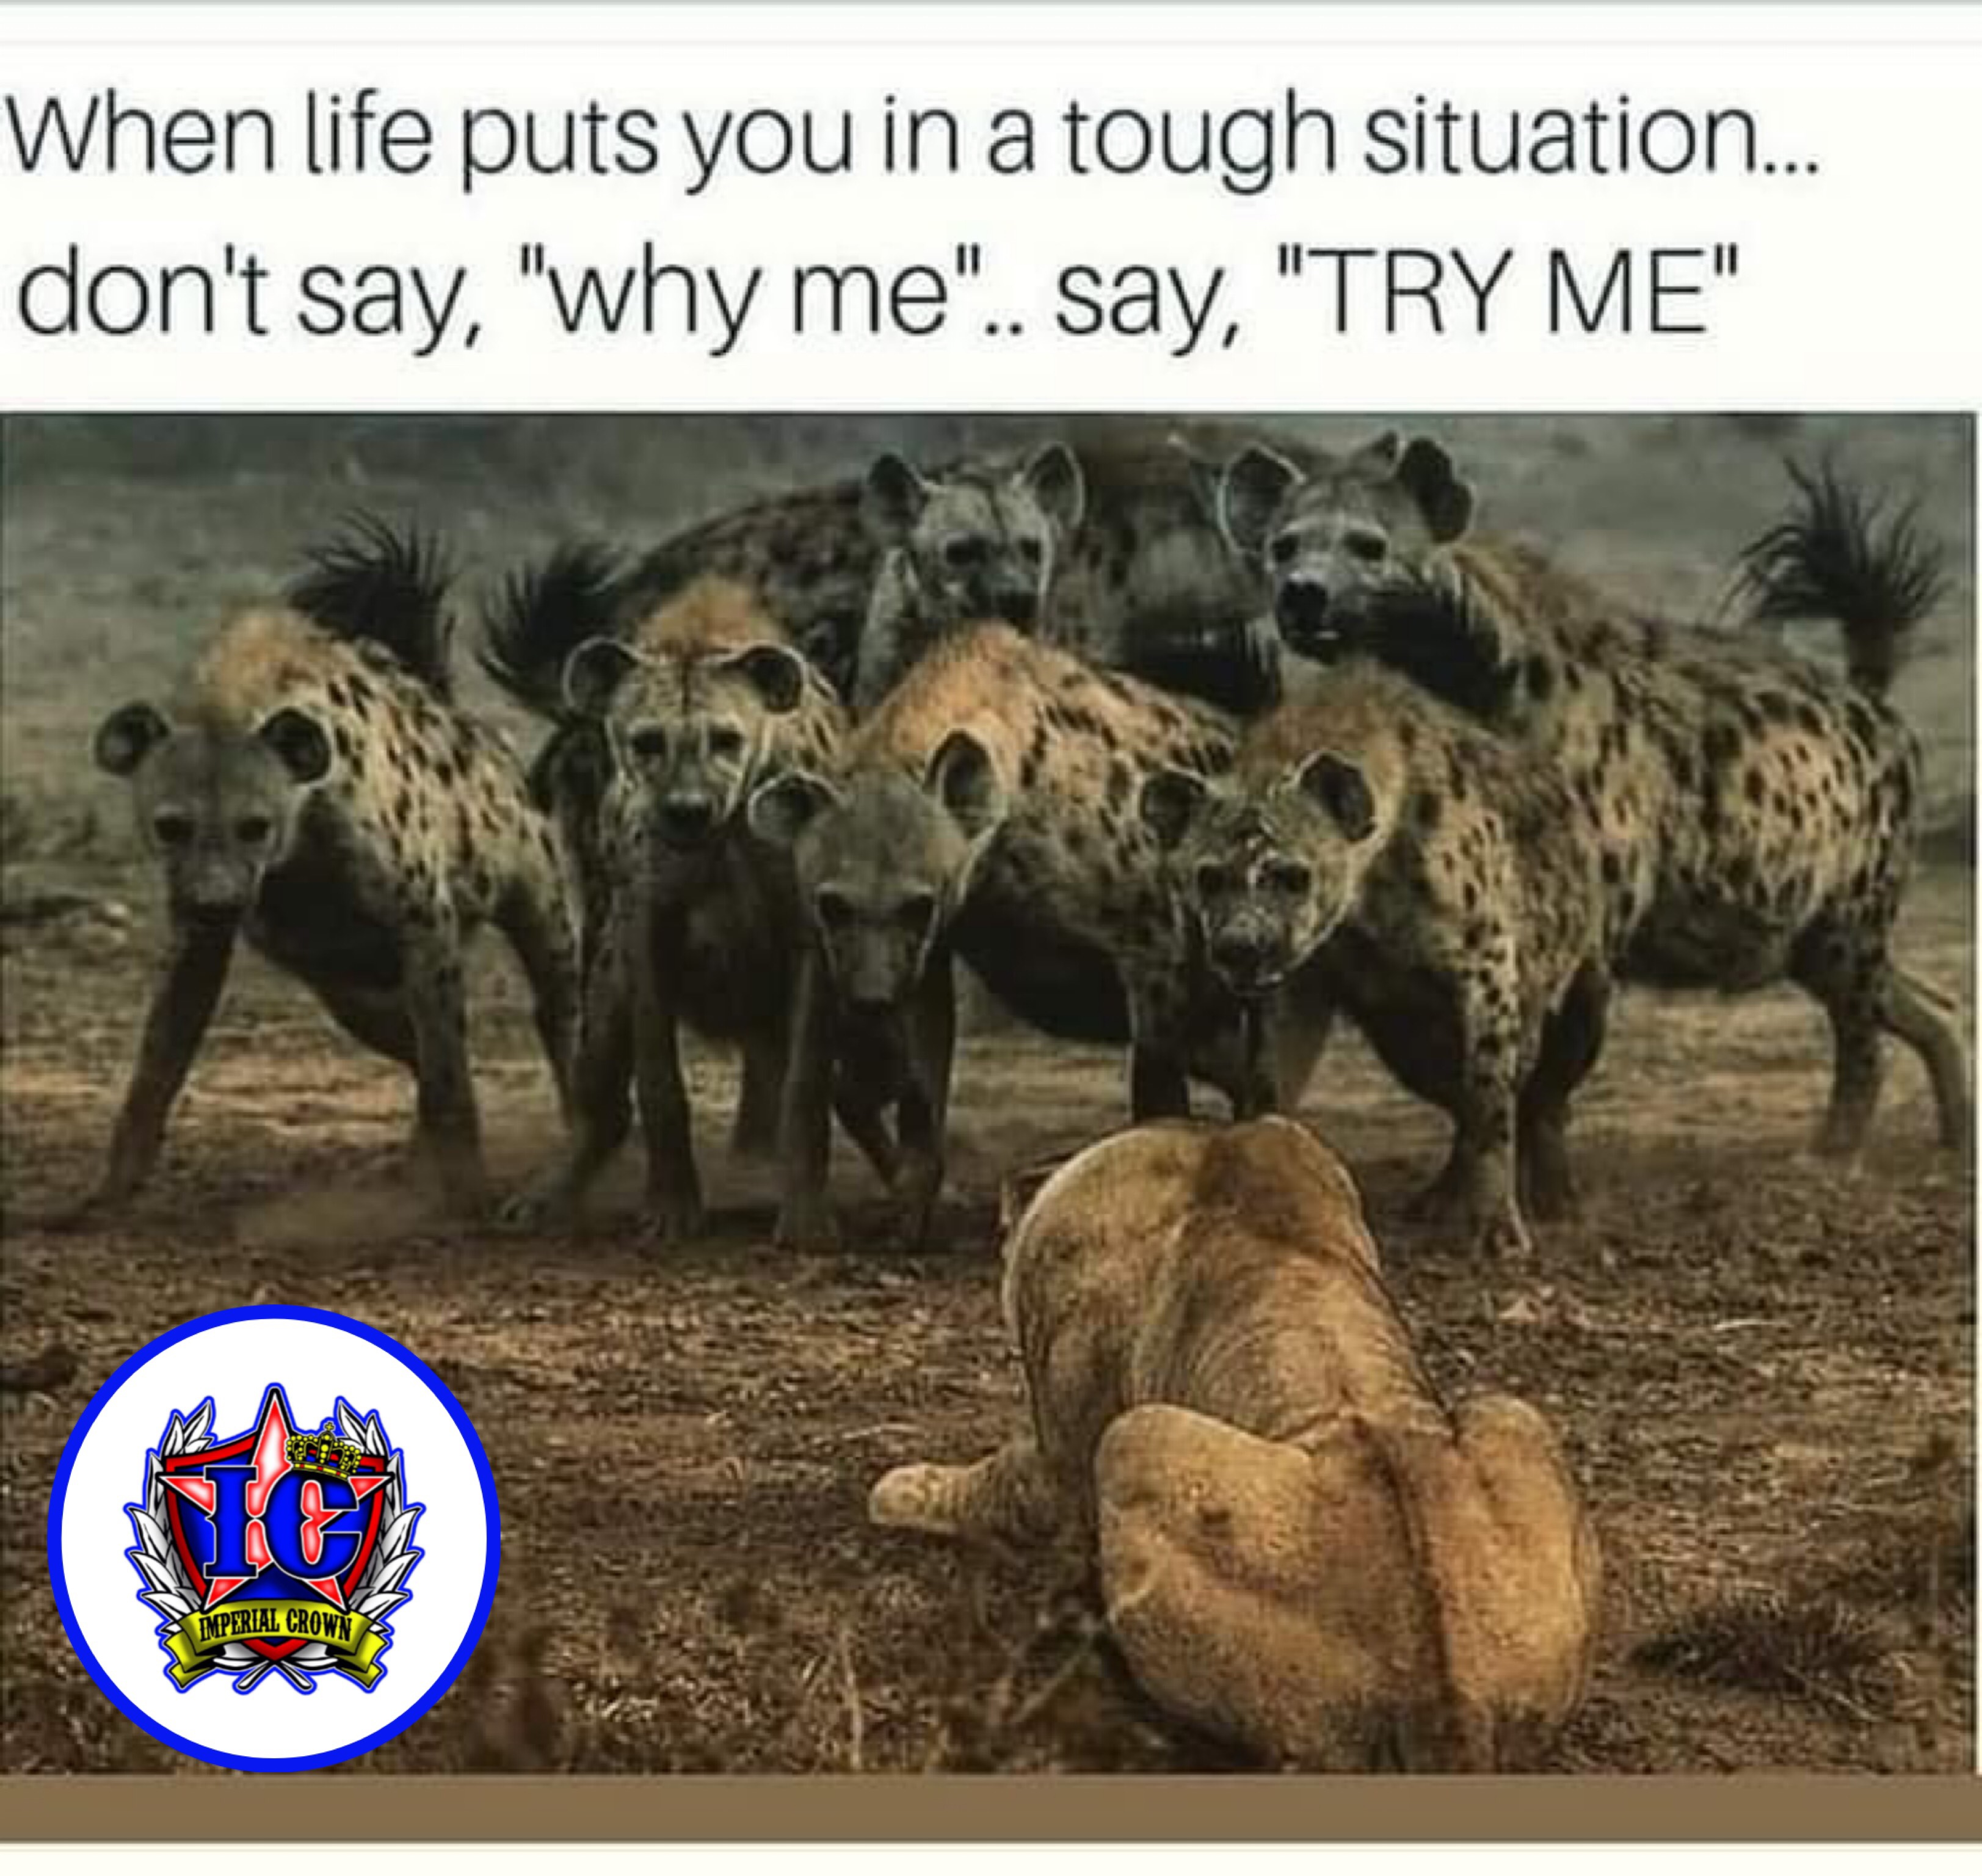 When life puts you in a tough situation don't say why me say try me